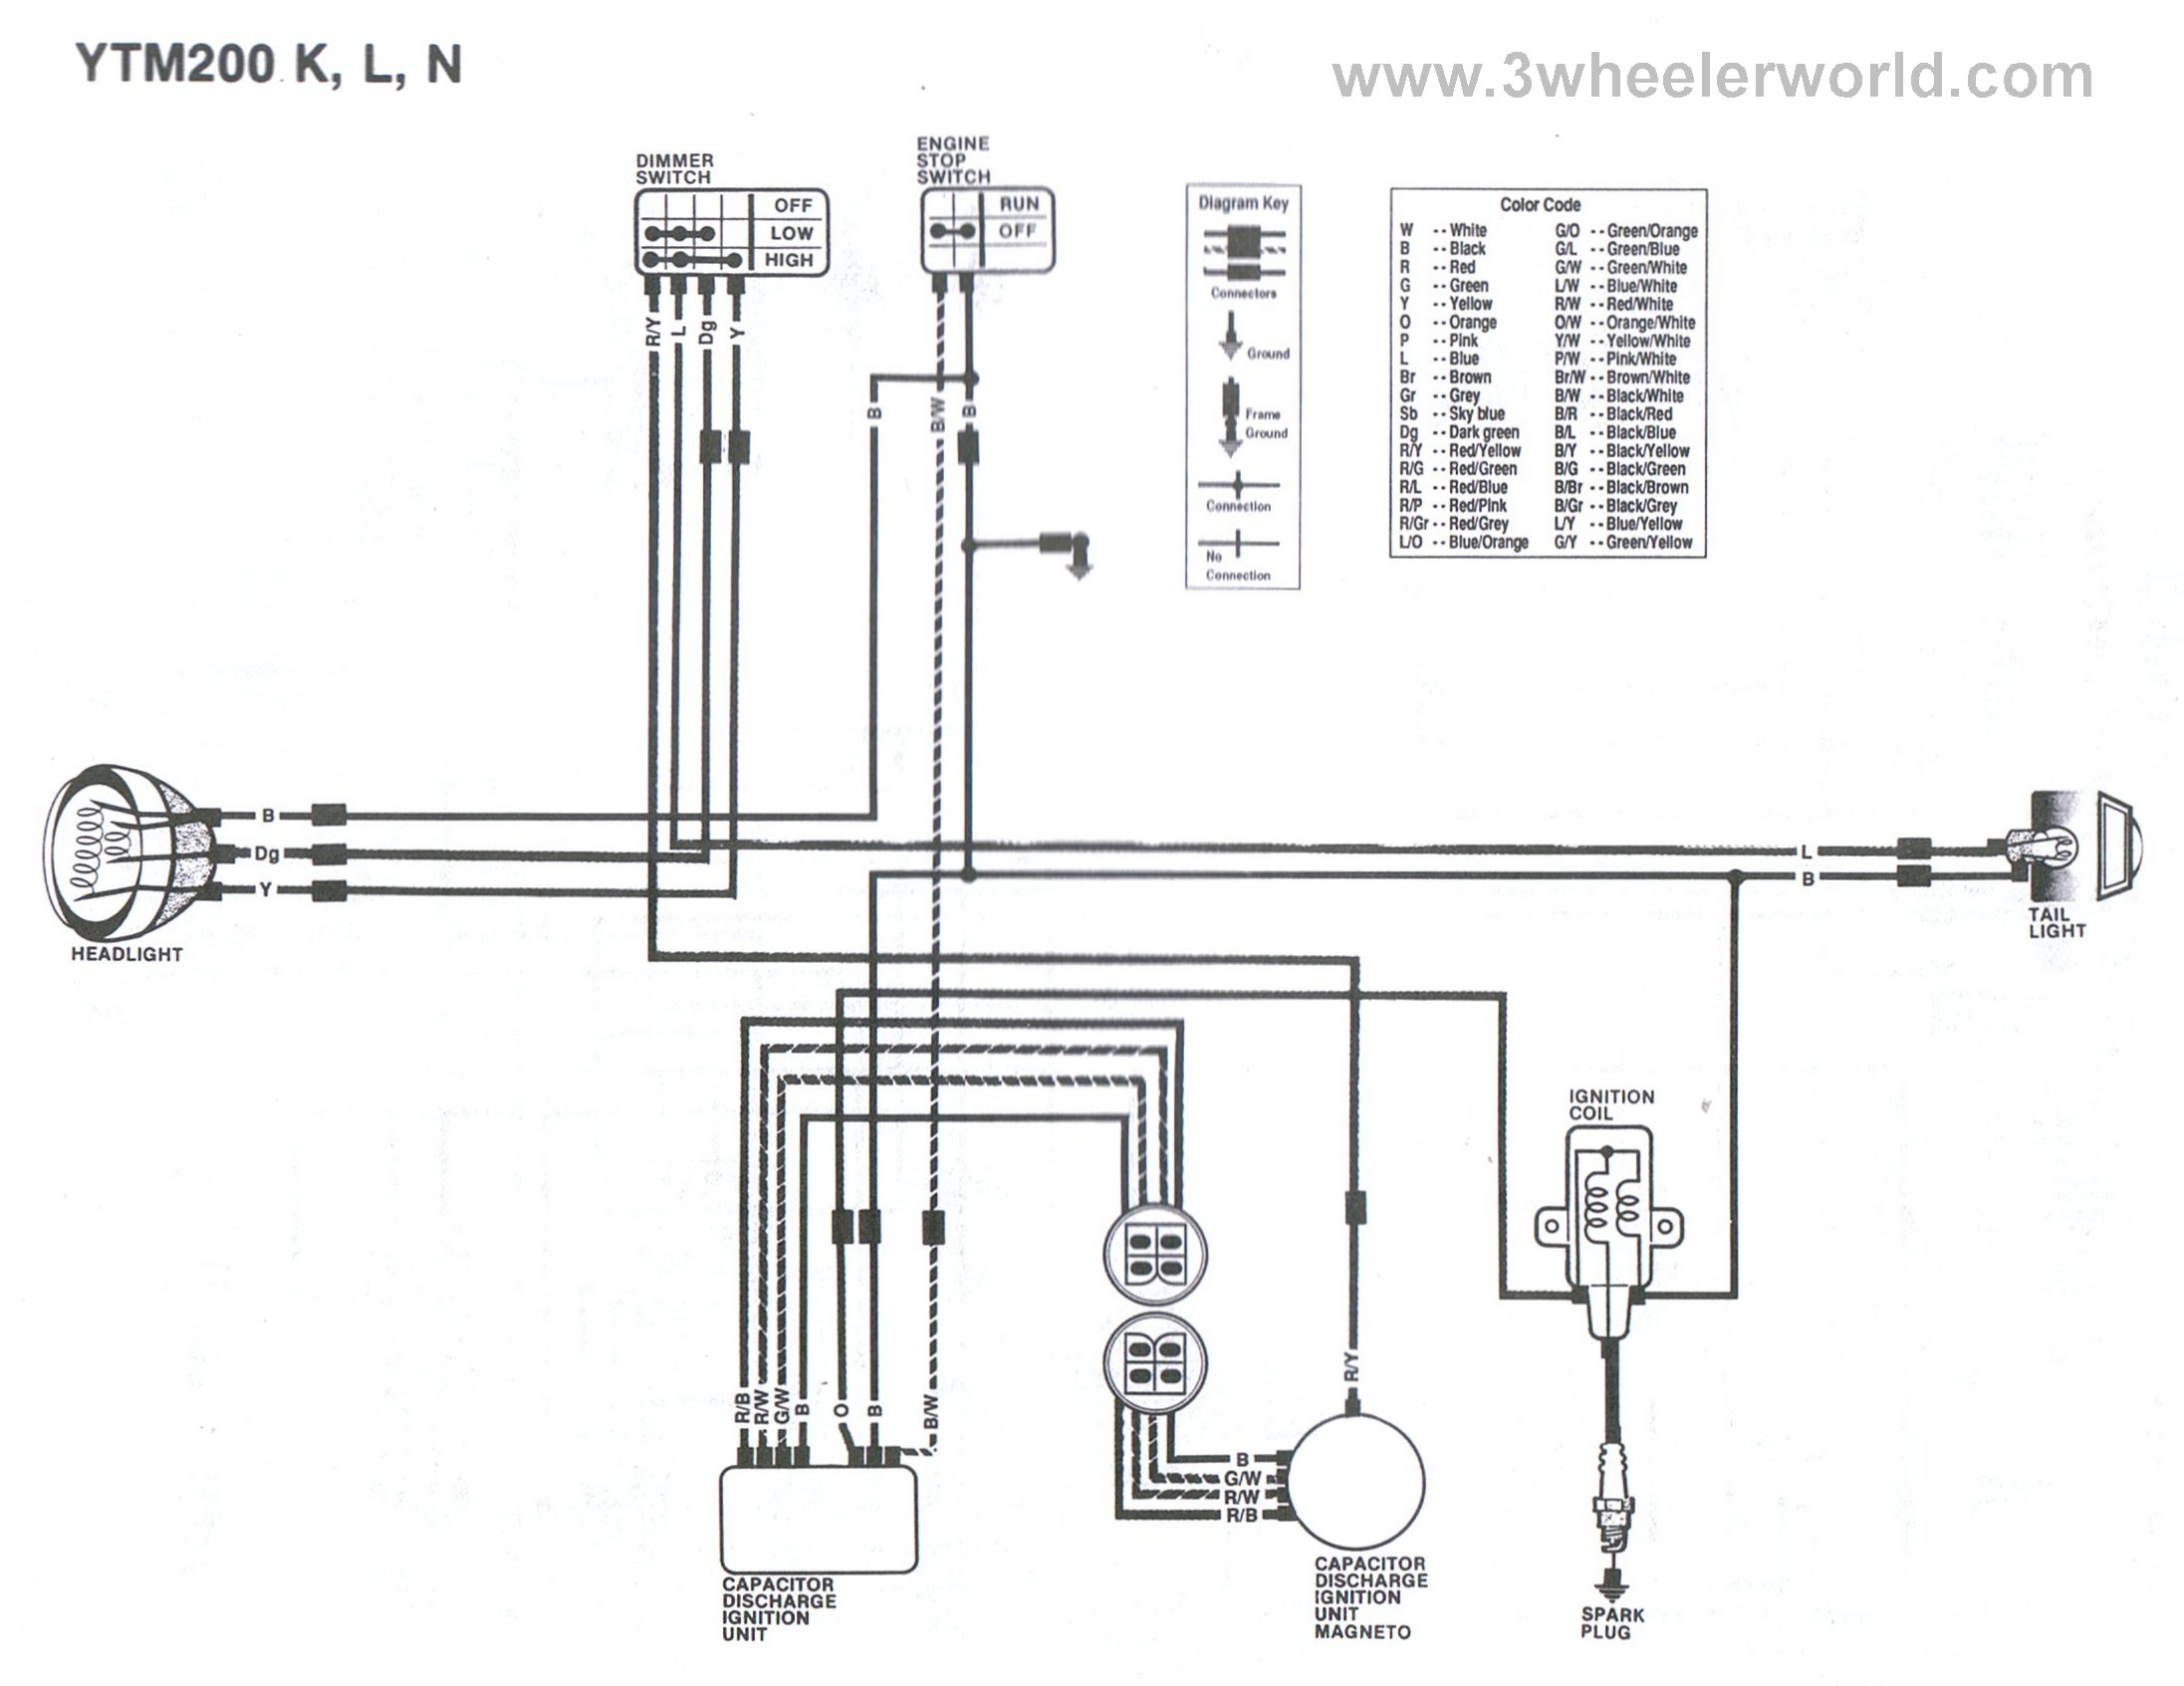 YTM200KLN 3 wheeler world tech help yamaha wiring diagrams yamaha ttr 225 wiring diagram at webbmarketing.co